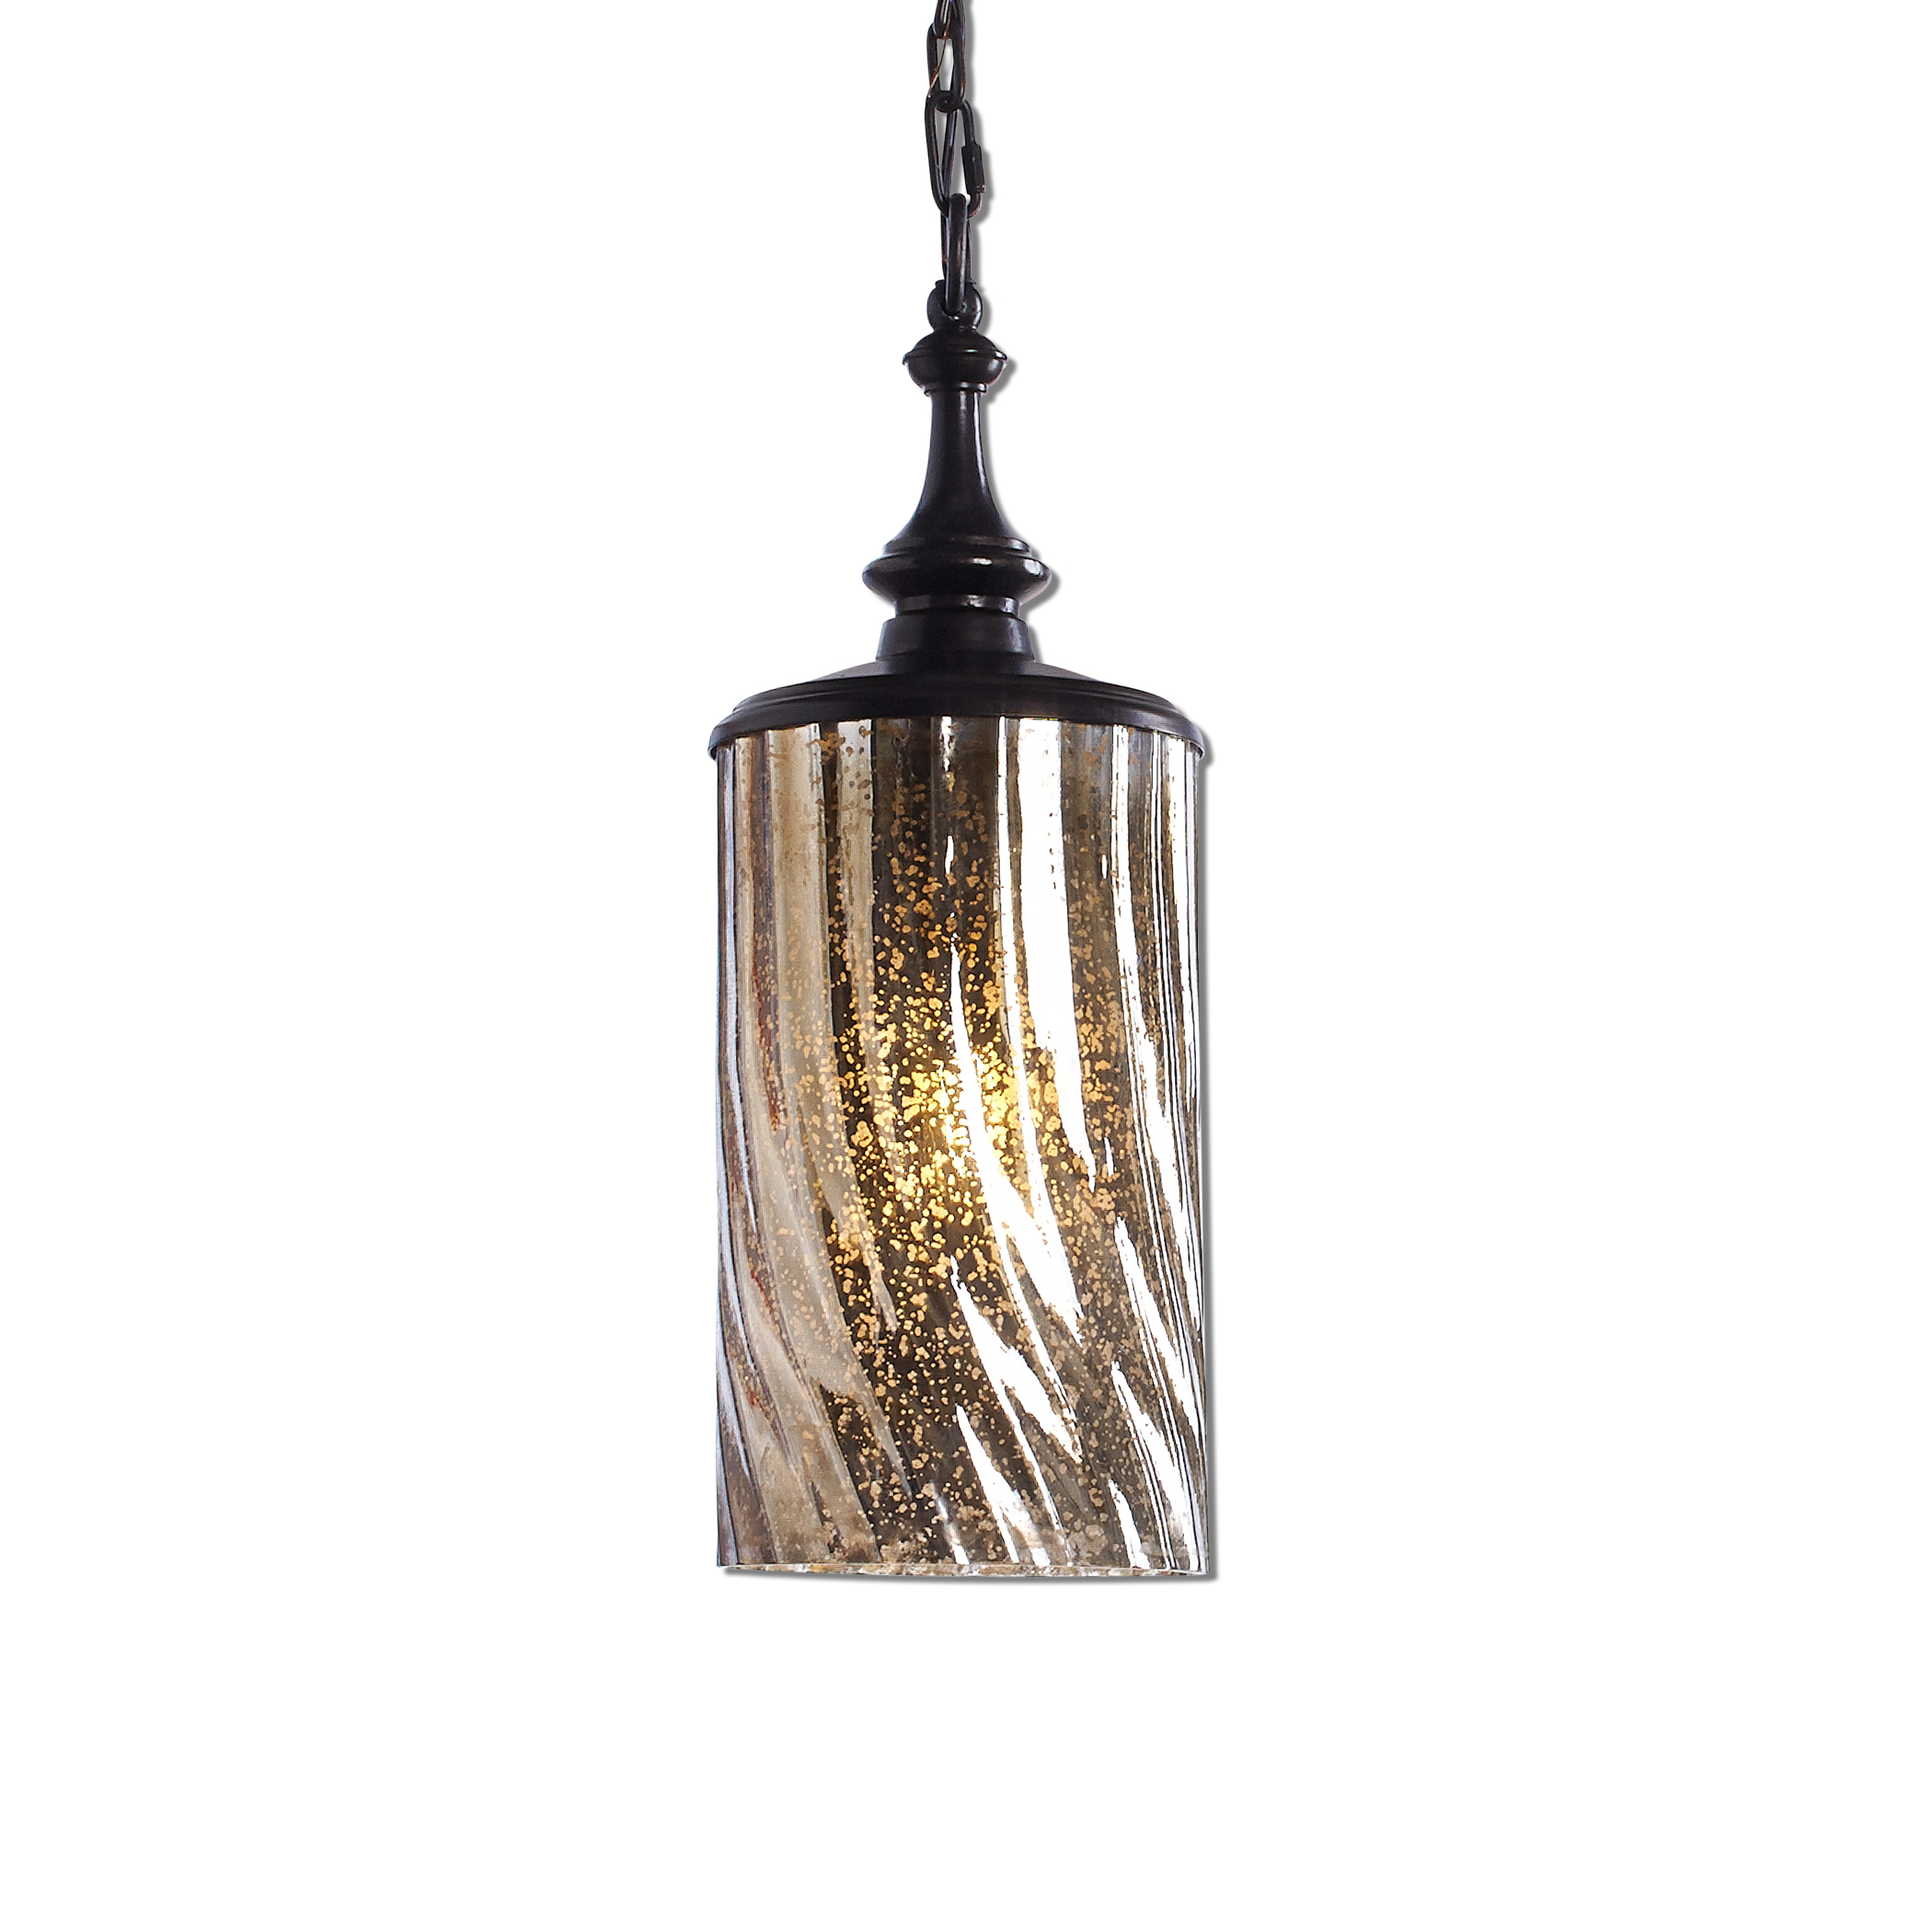 Uttermost Lighting Fixtures Trabes 1 Light Glass Mini Pendant - Item Number: 22037